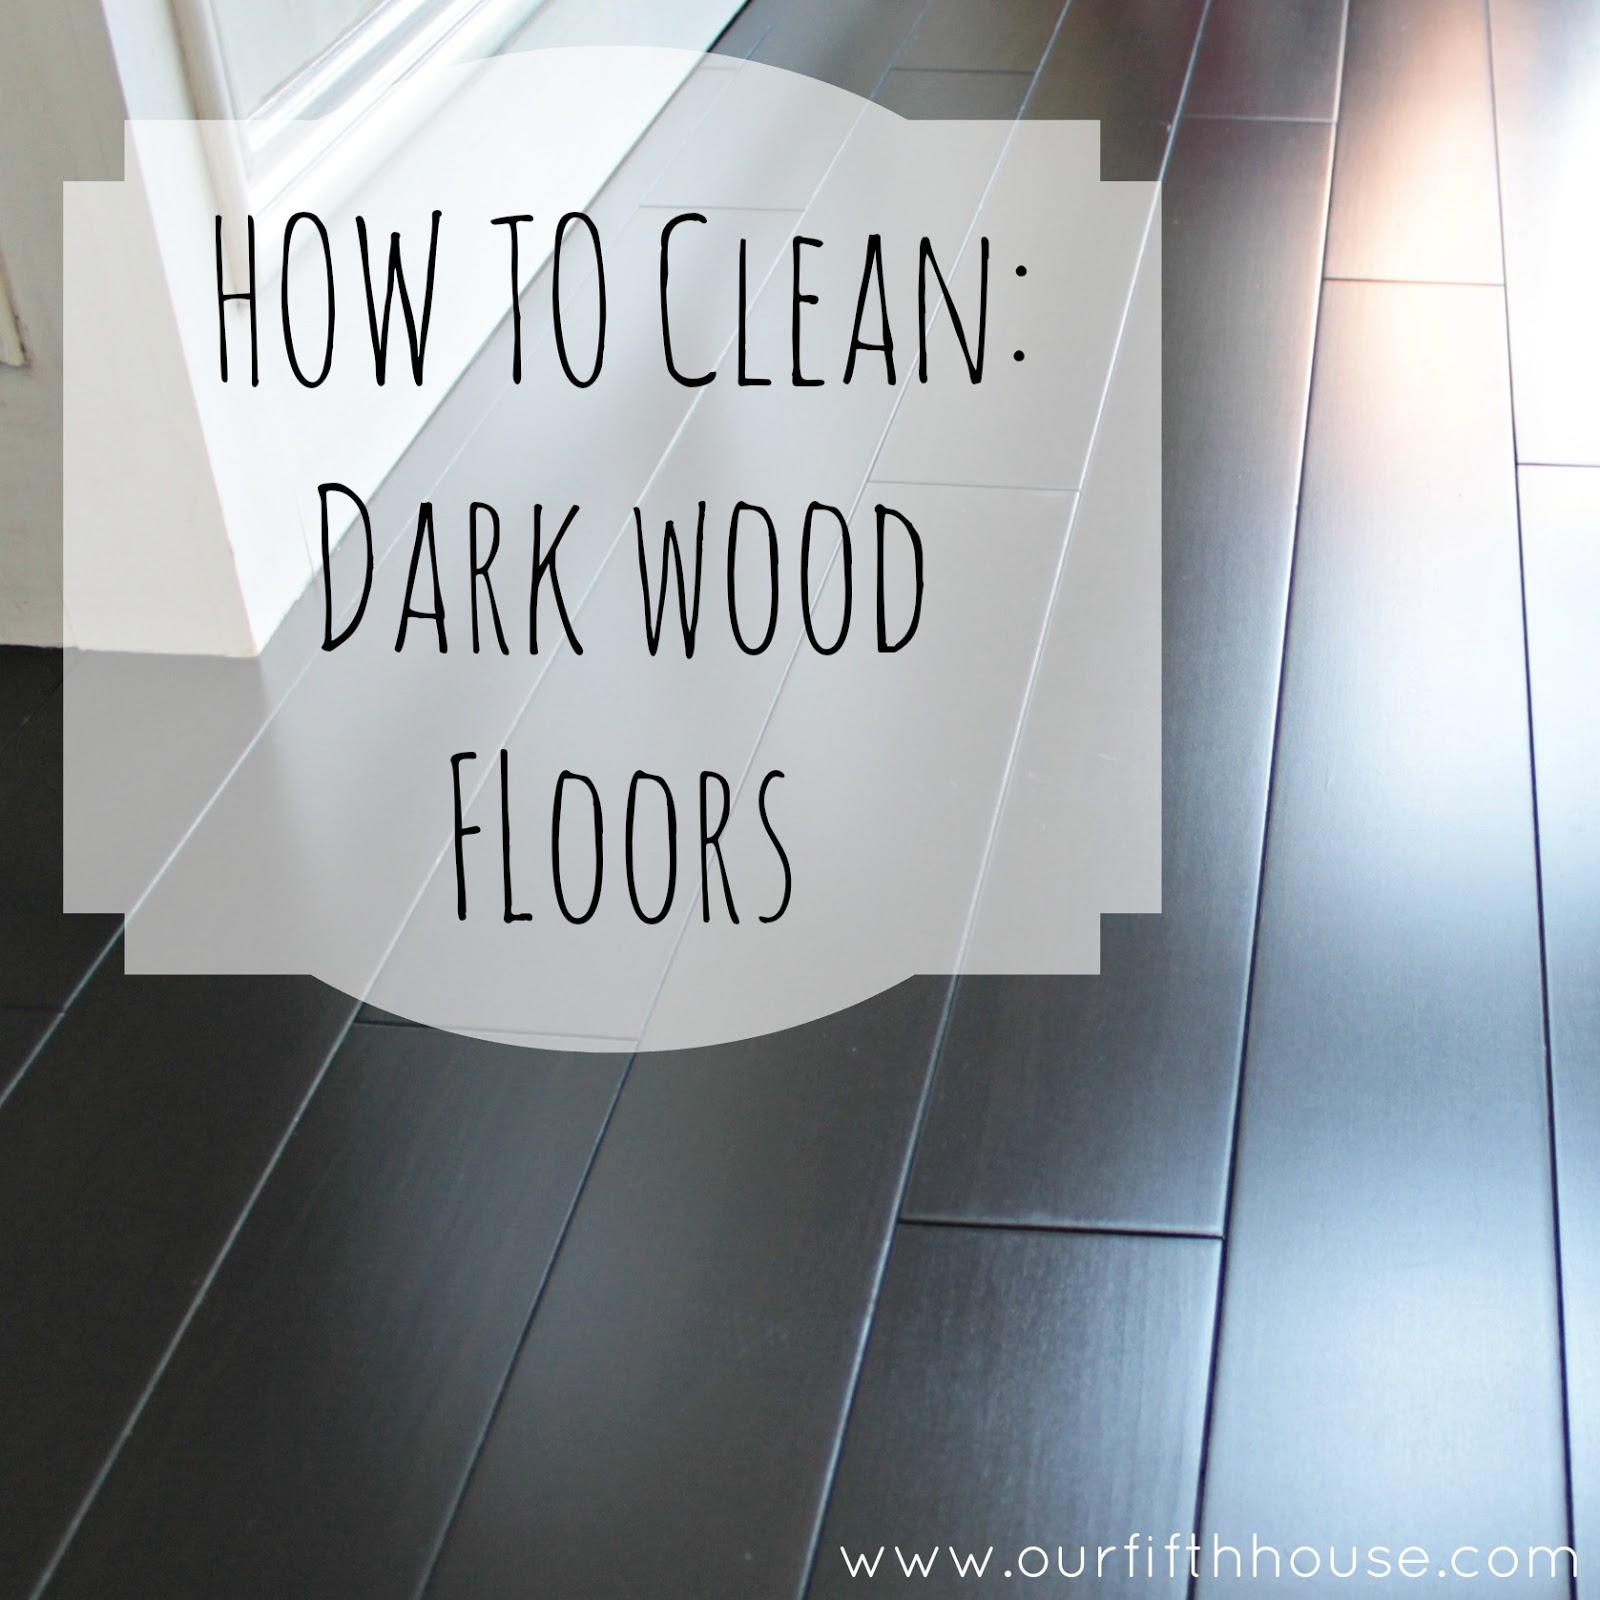 How To Clean Dark Wood Floors   Our Fifth House How To Clean Dark Wood Floors